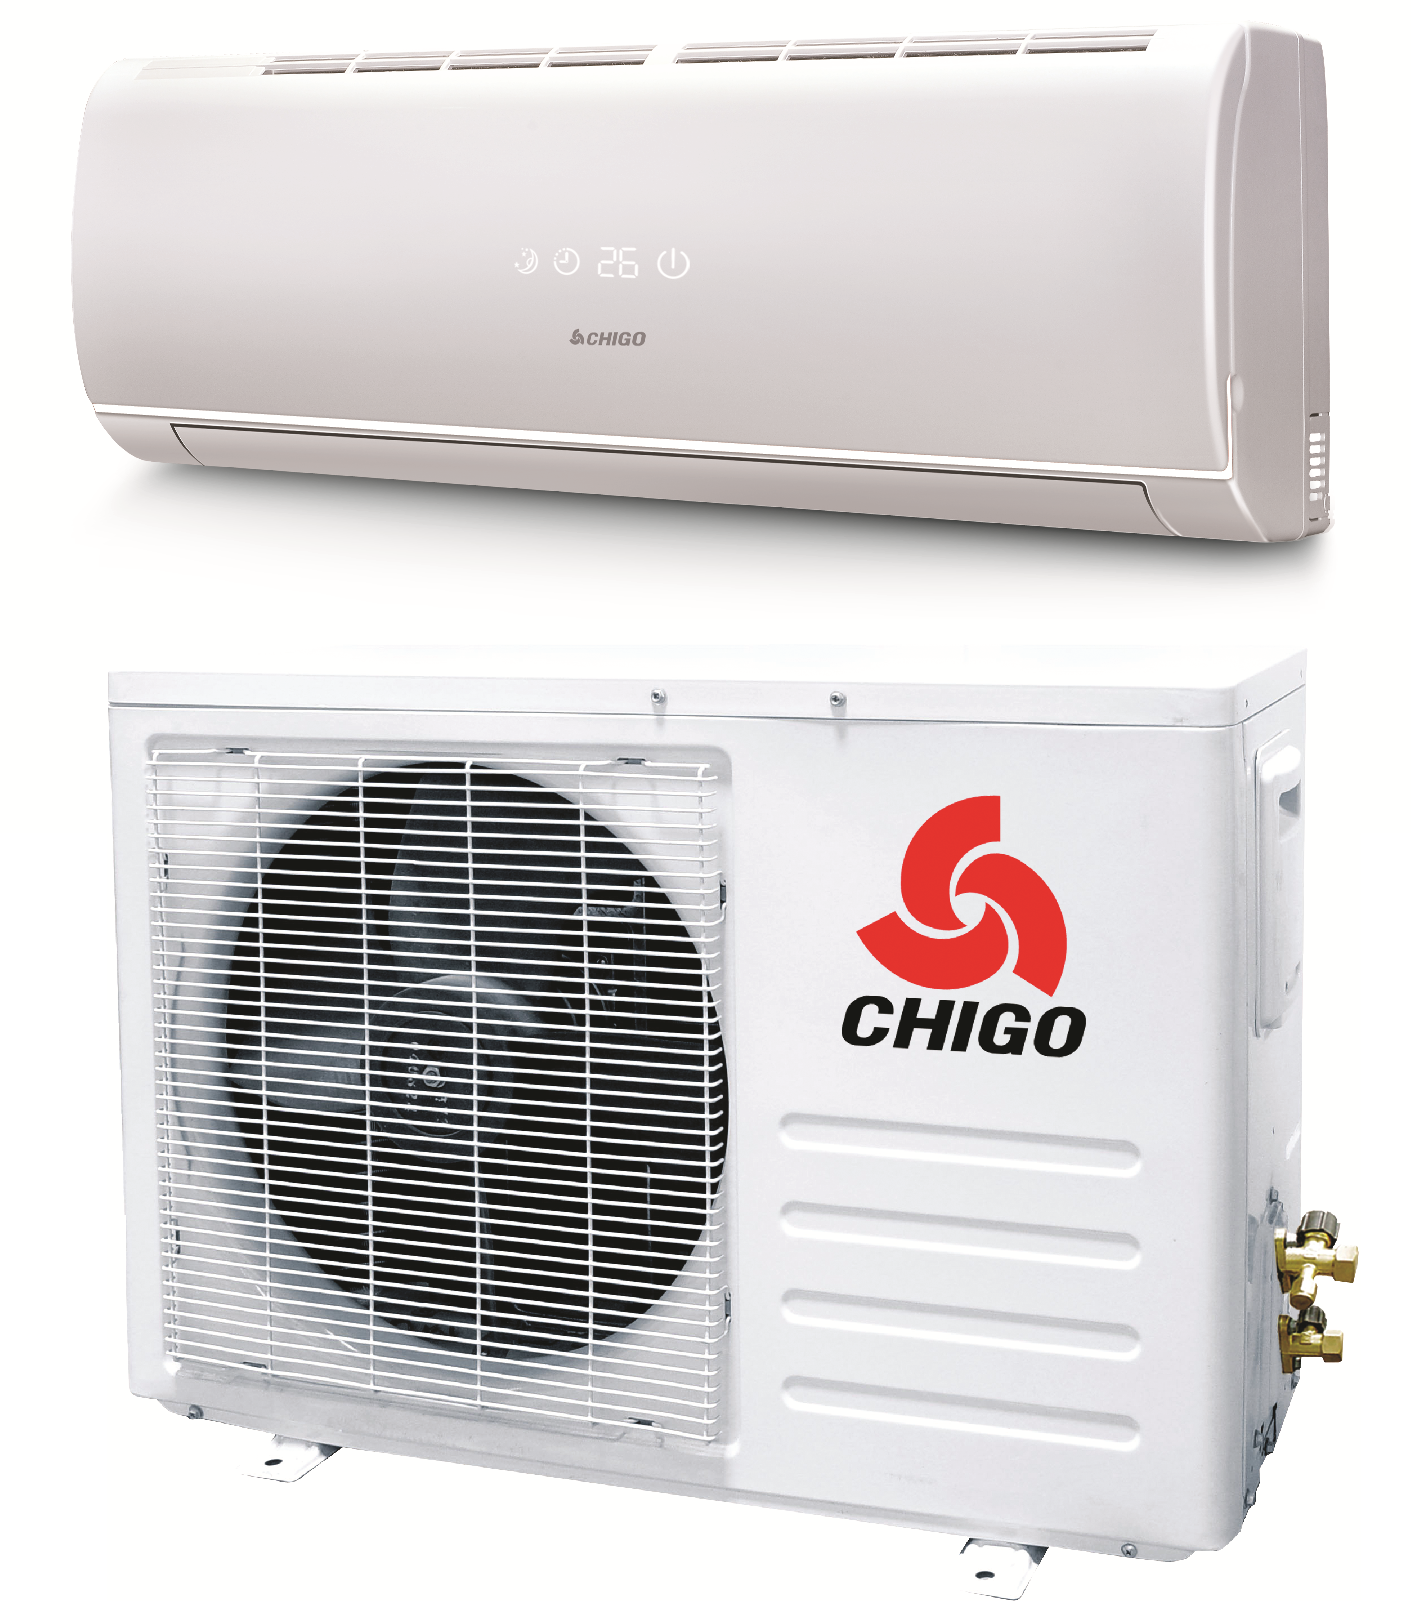 Chigo Air Conditioner Schematic Everything About Wiring Diagram Ductless Compressor A Motor Split Manual